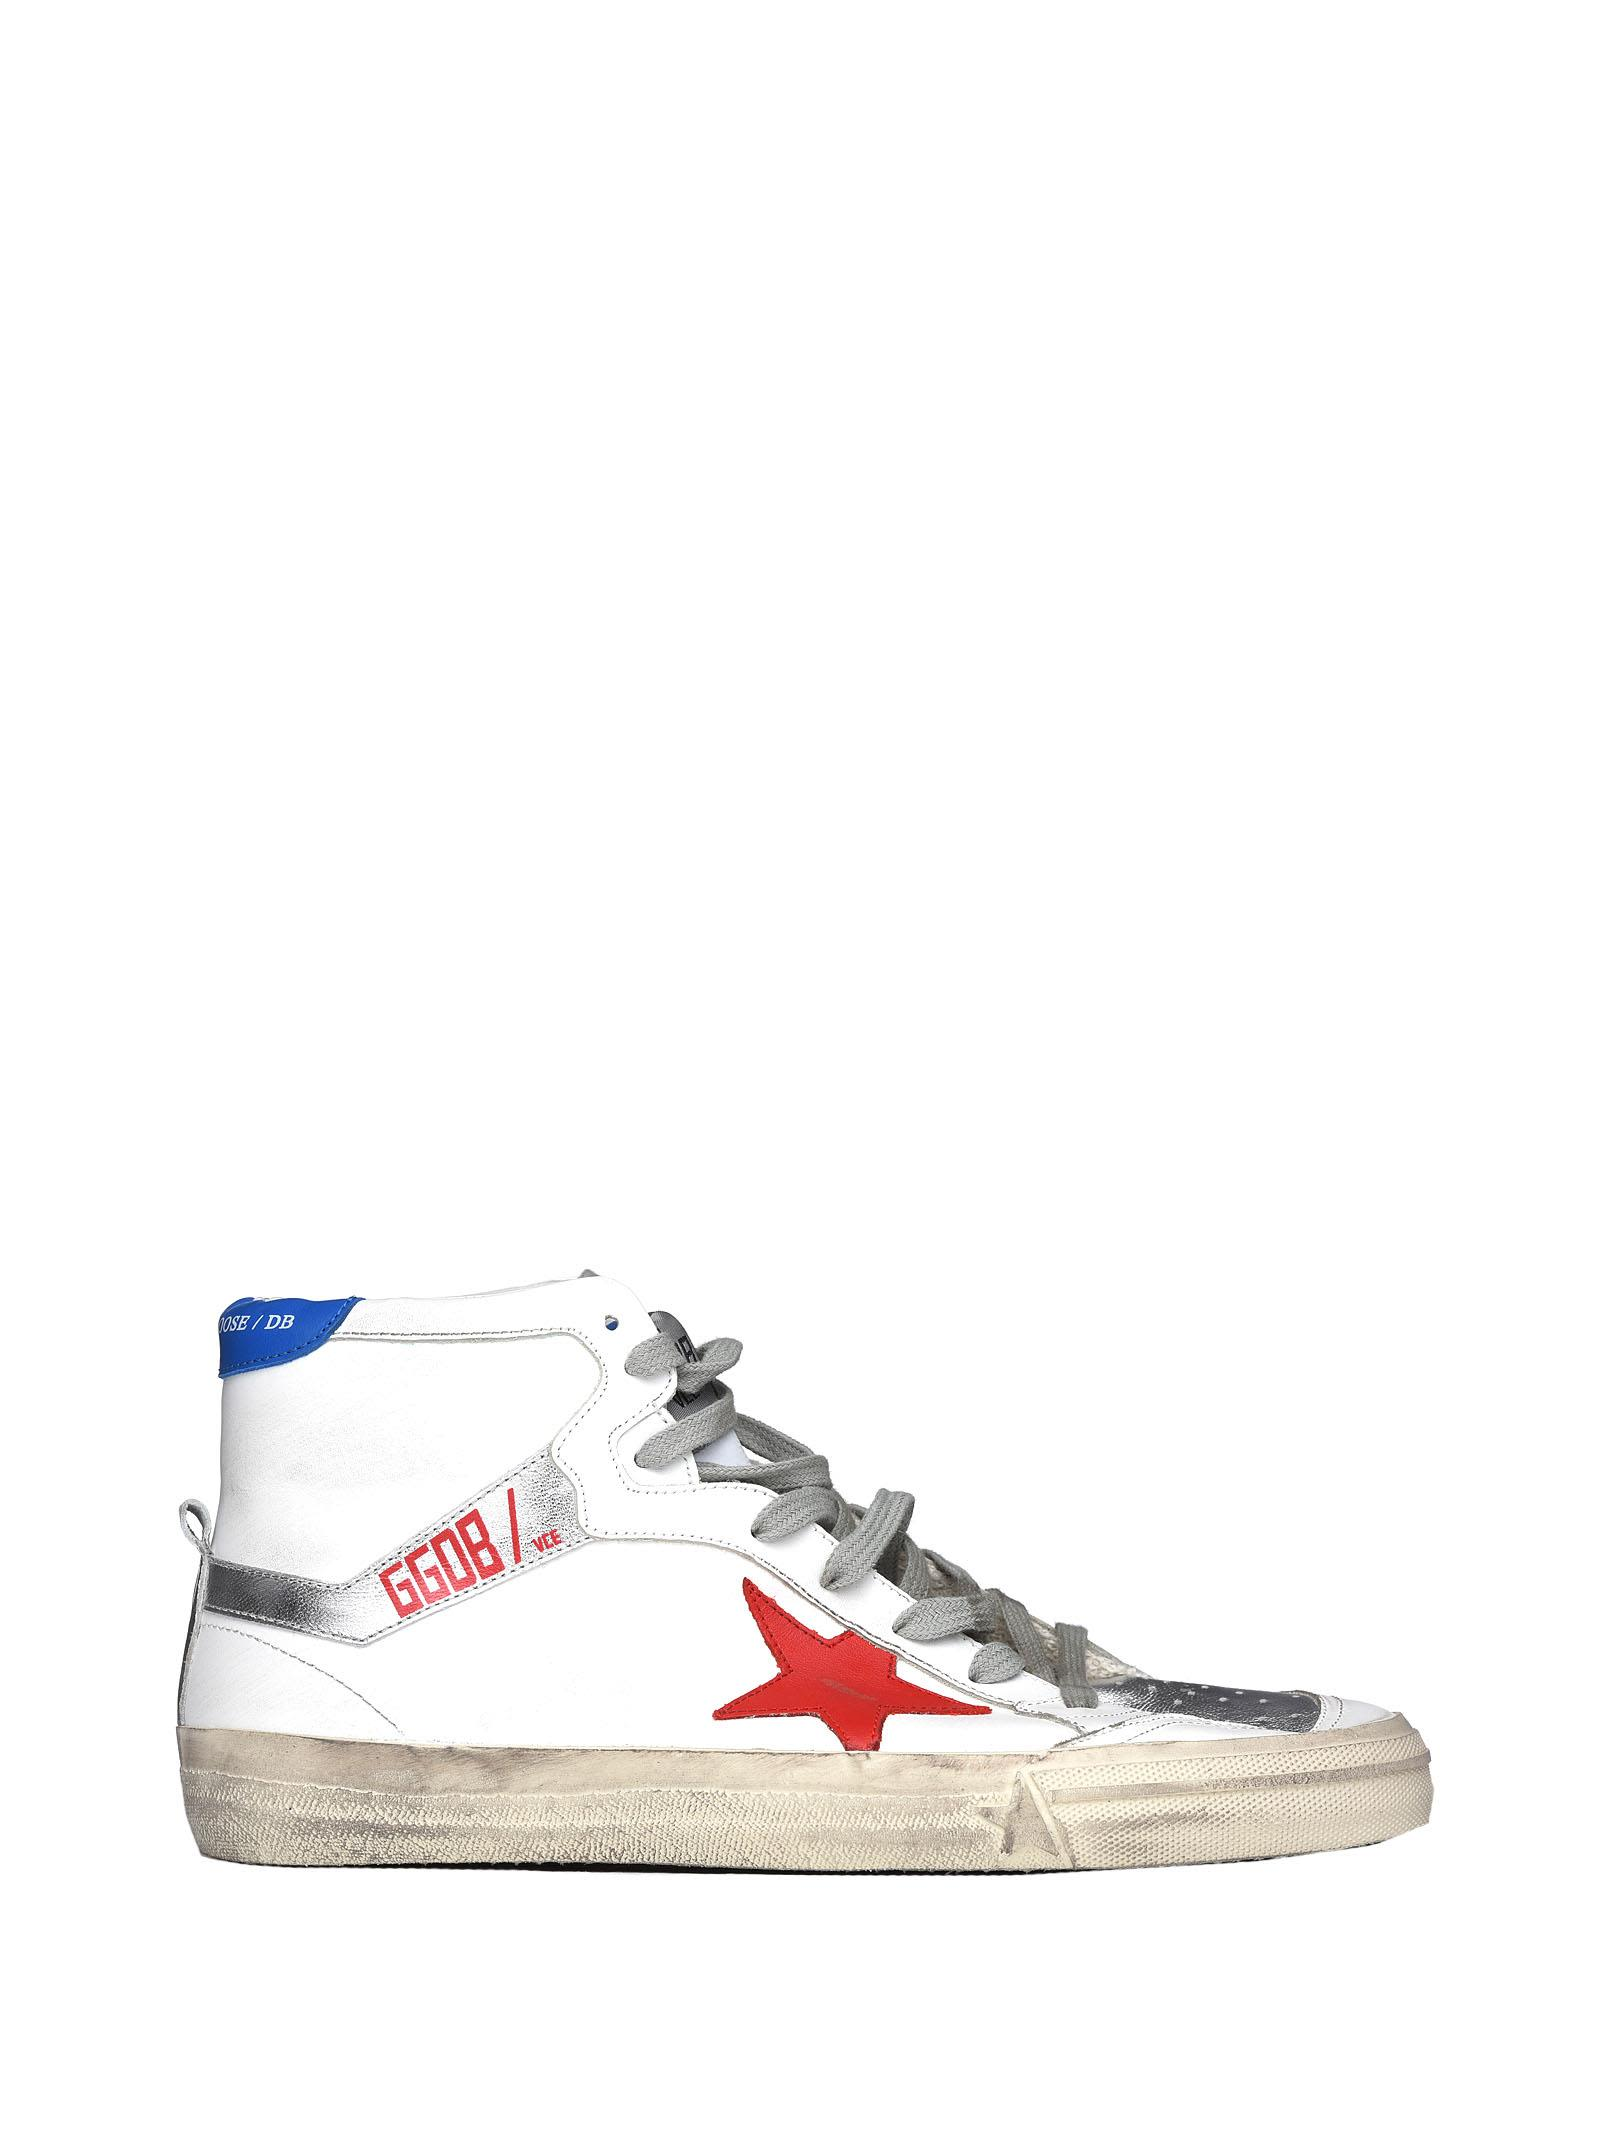 Golden Goose 2.12 Sneakers In White, Red And Blue Leather